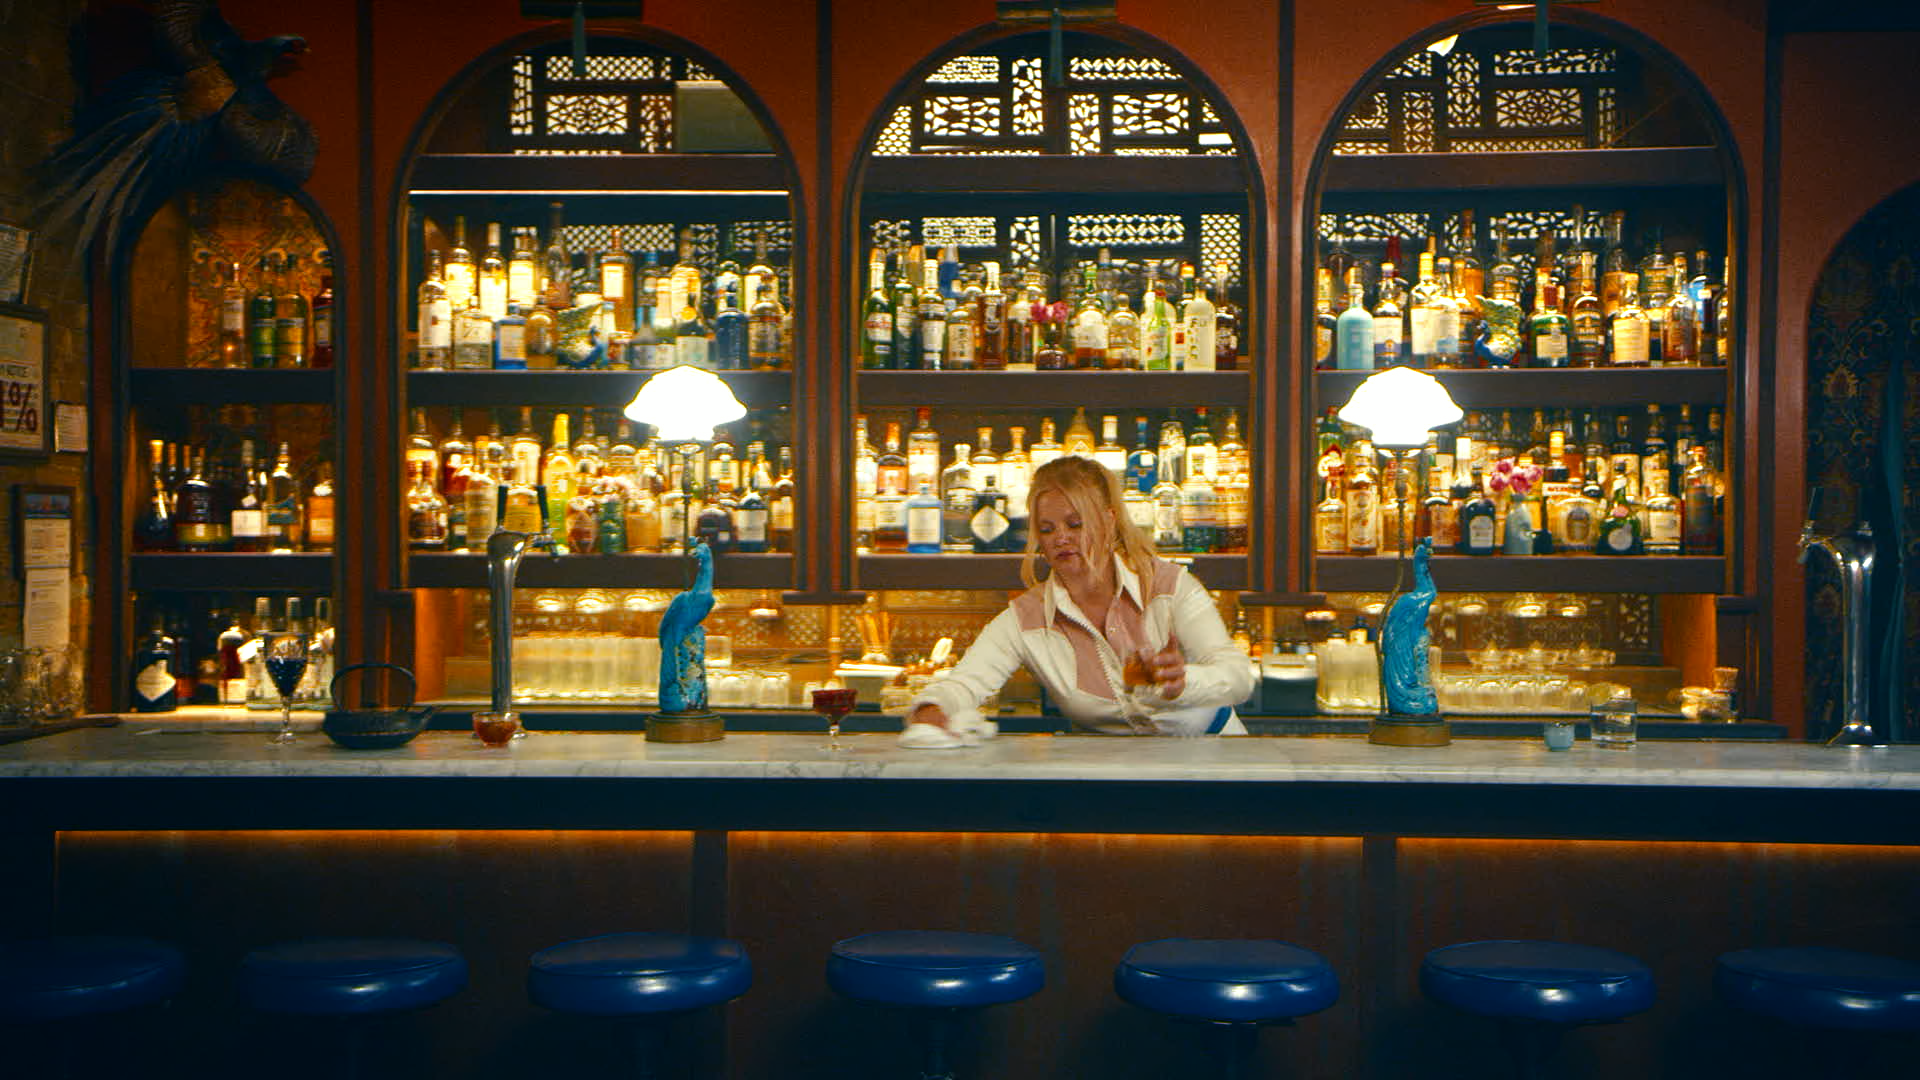 Janice at the Hotel Bar – Hailey Whitters